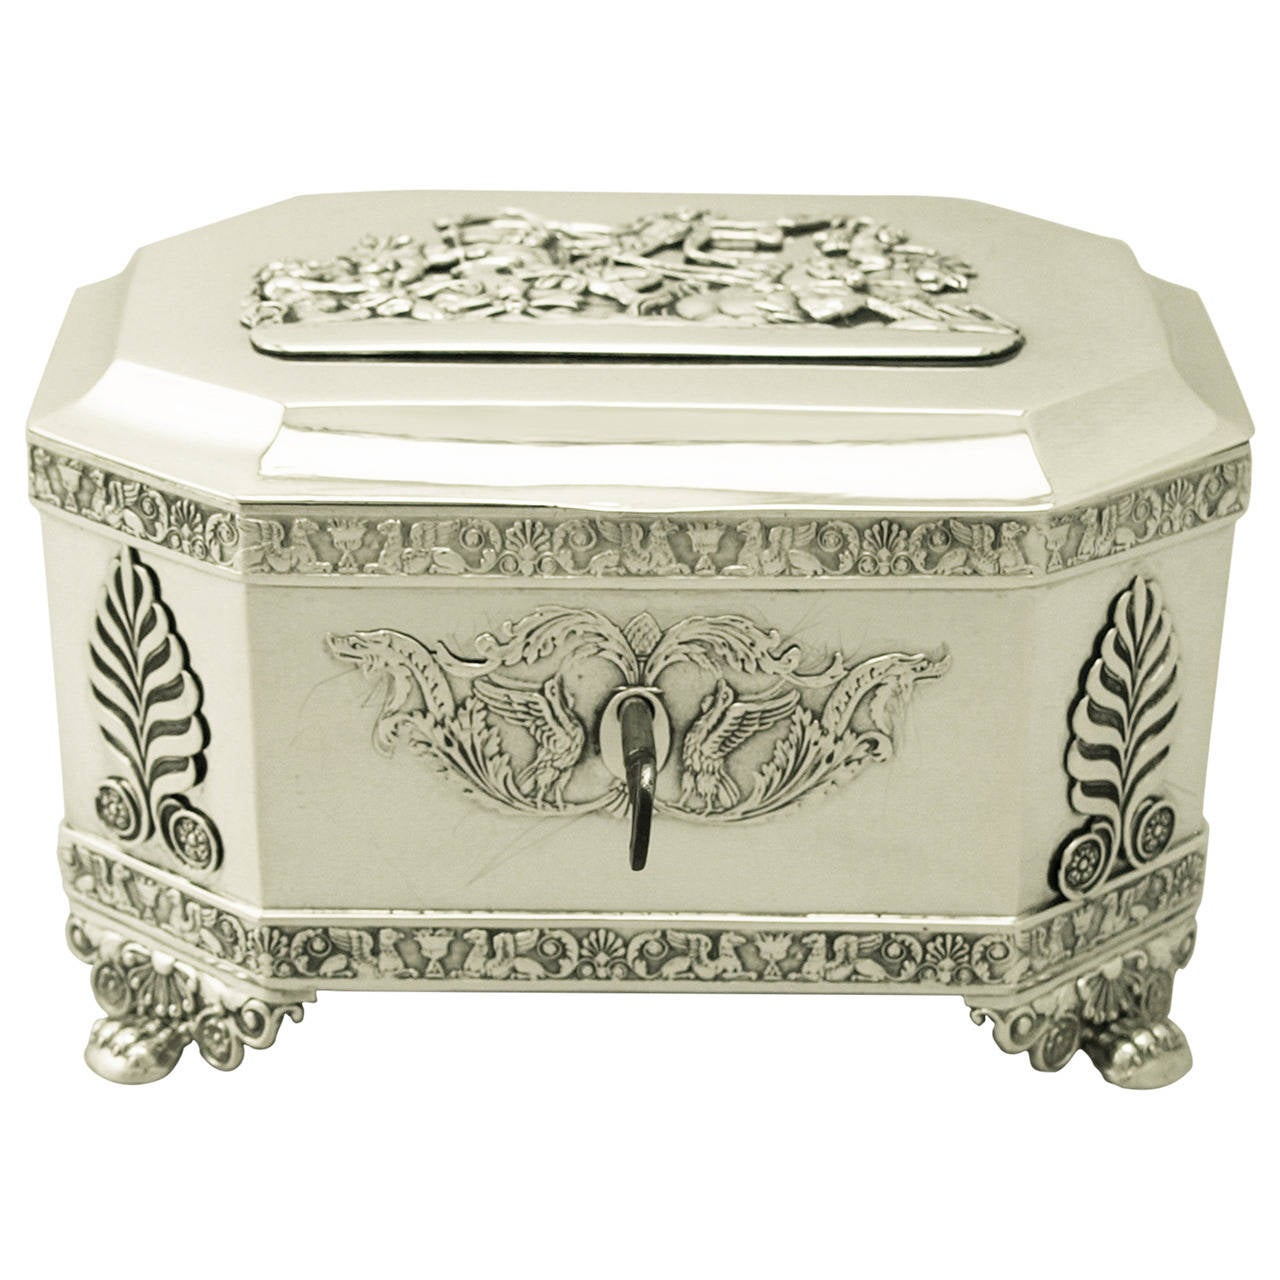 Antique Polish Silver Locking Casket Regency Style Circa 1840 At 1stdibs